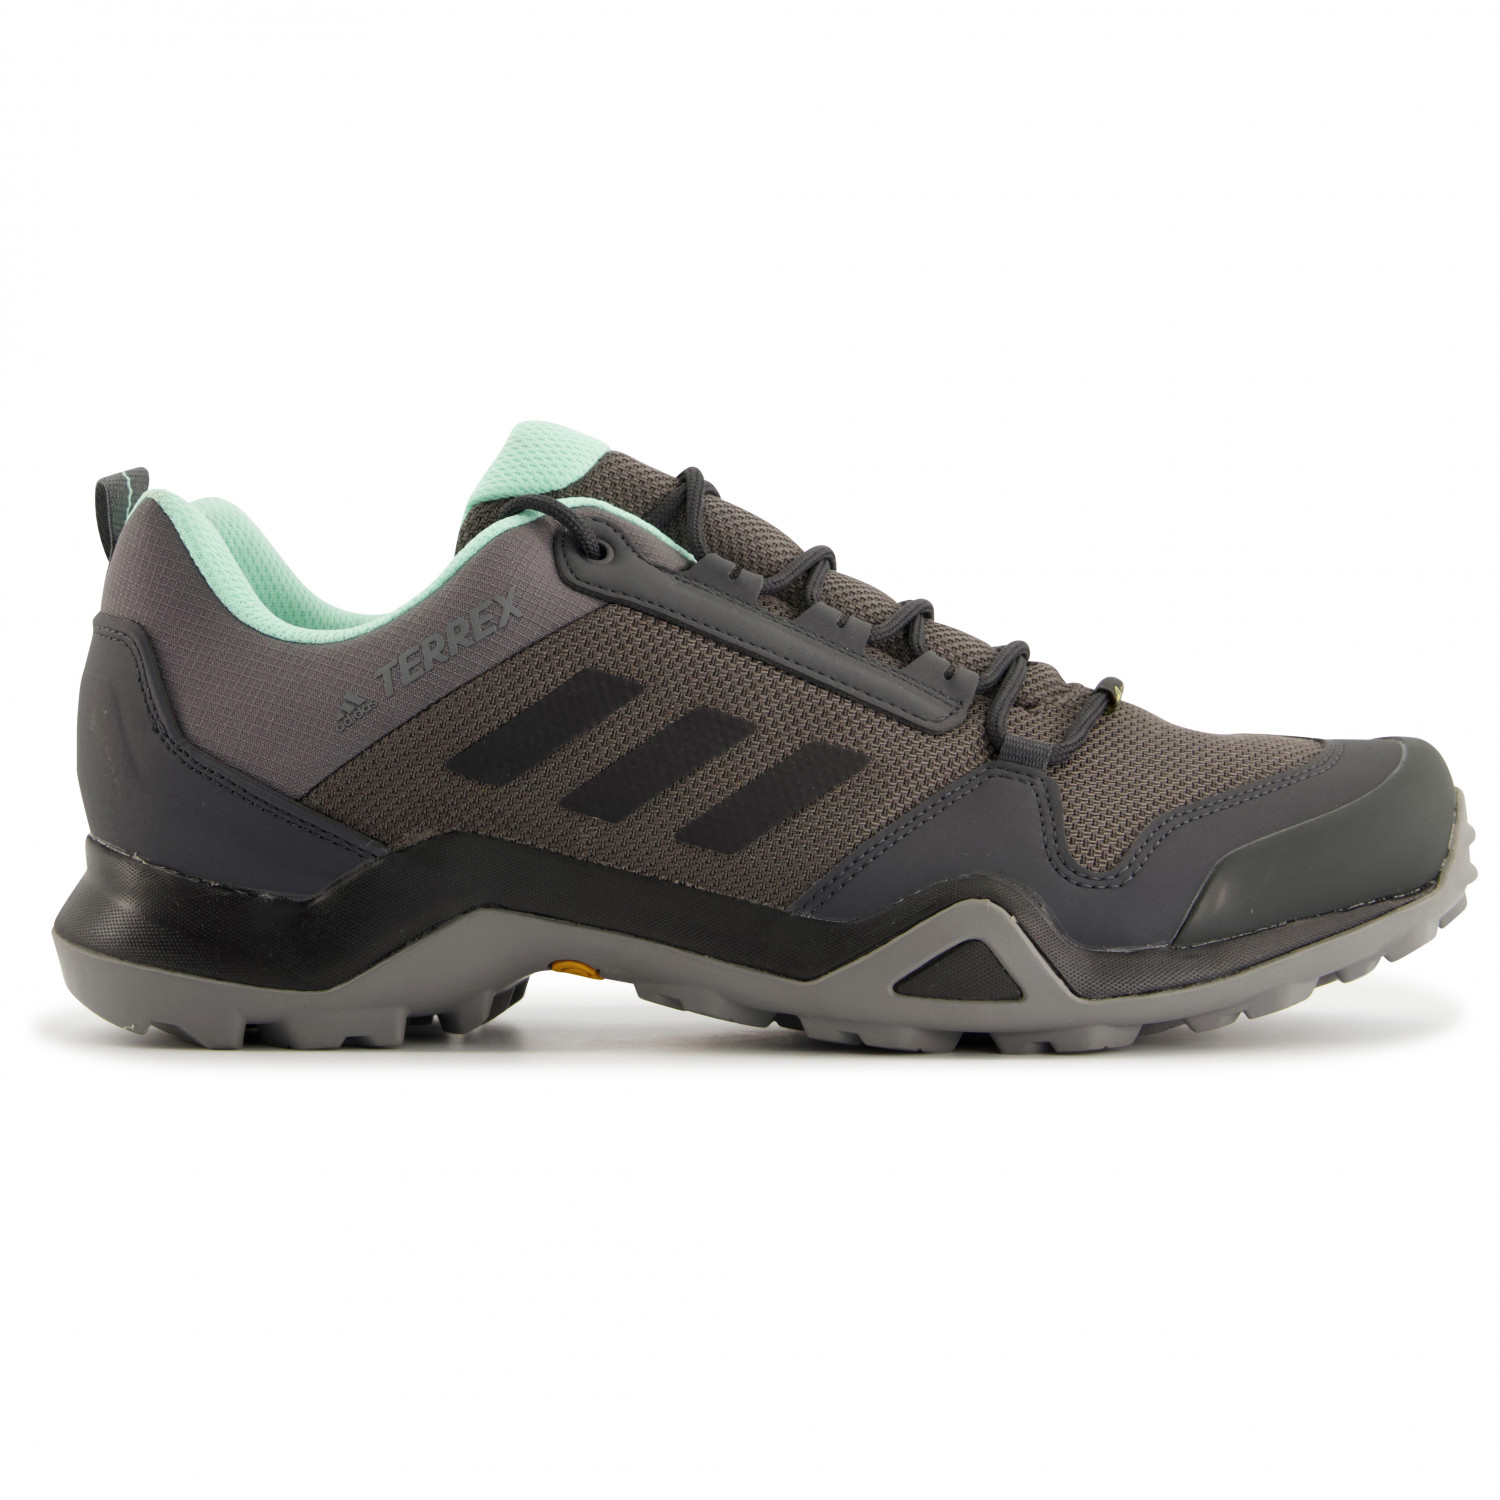 adidas - Women's Terrex AX3 GTX - Multisport shoes - Grey Five / Core Black  / Clemin | 3,5 (UK)